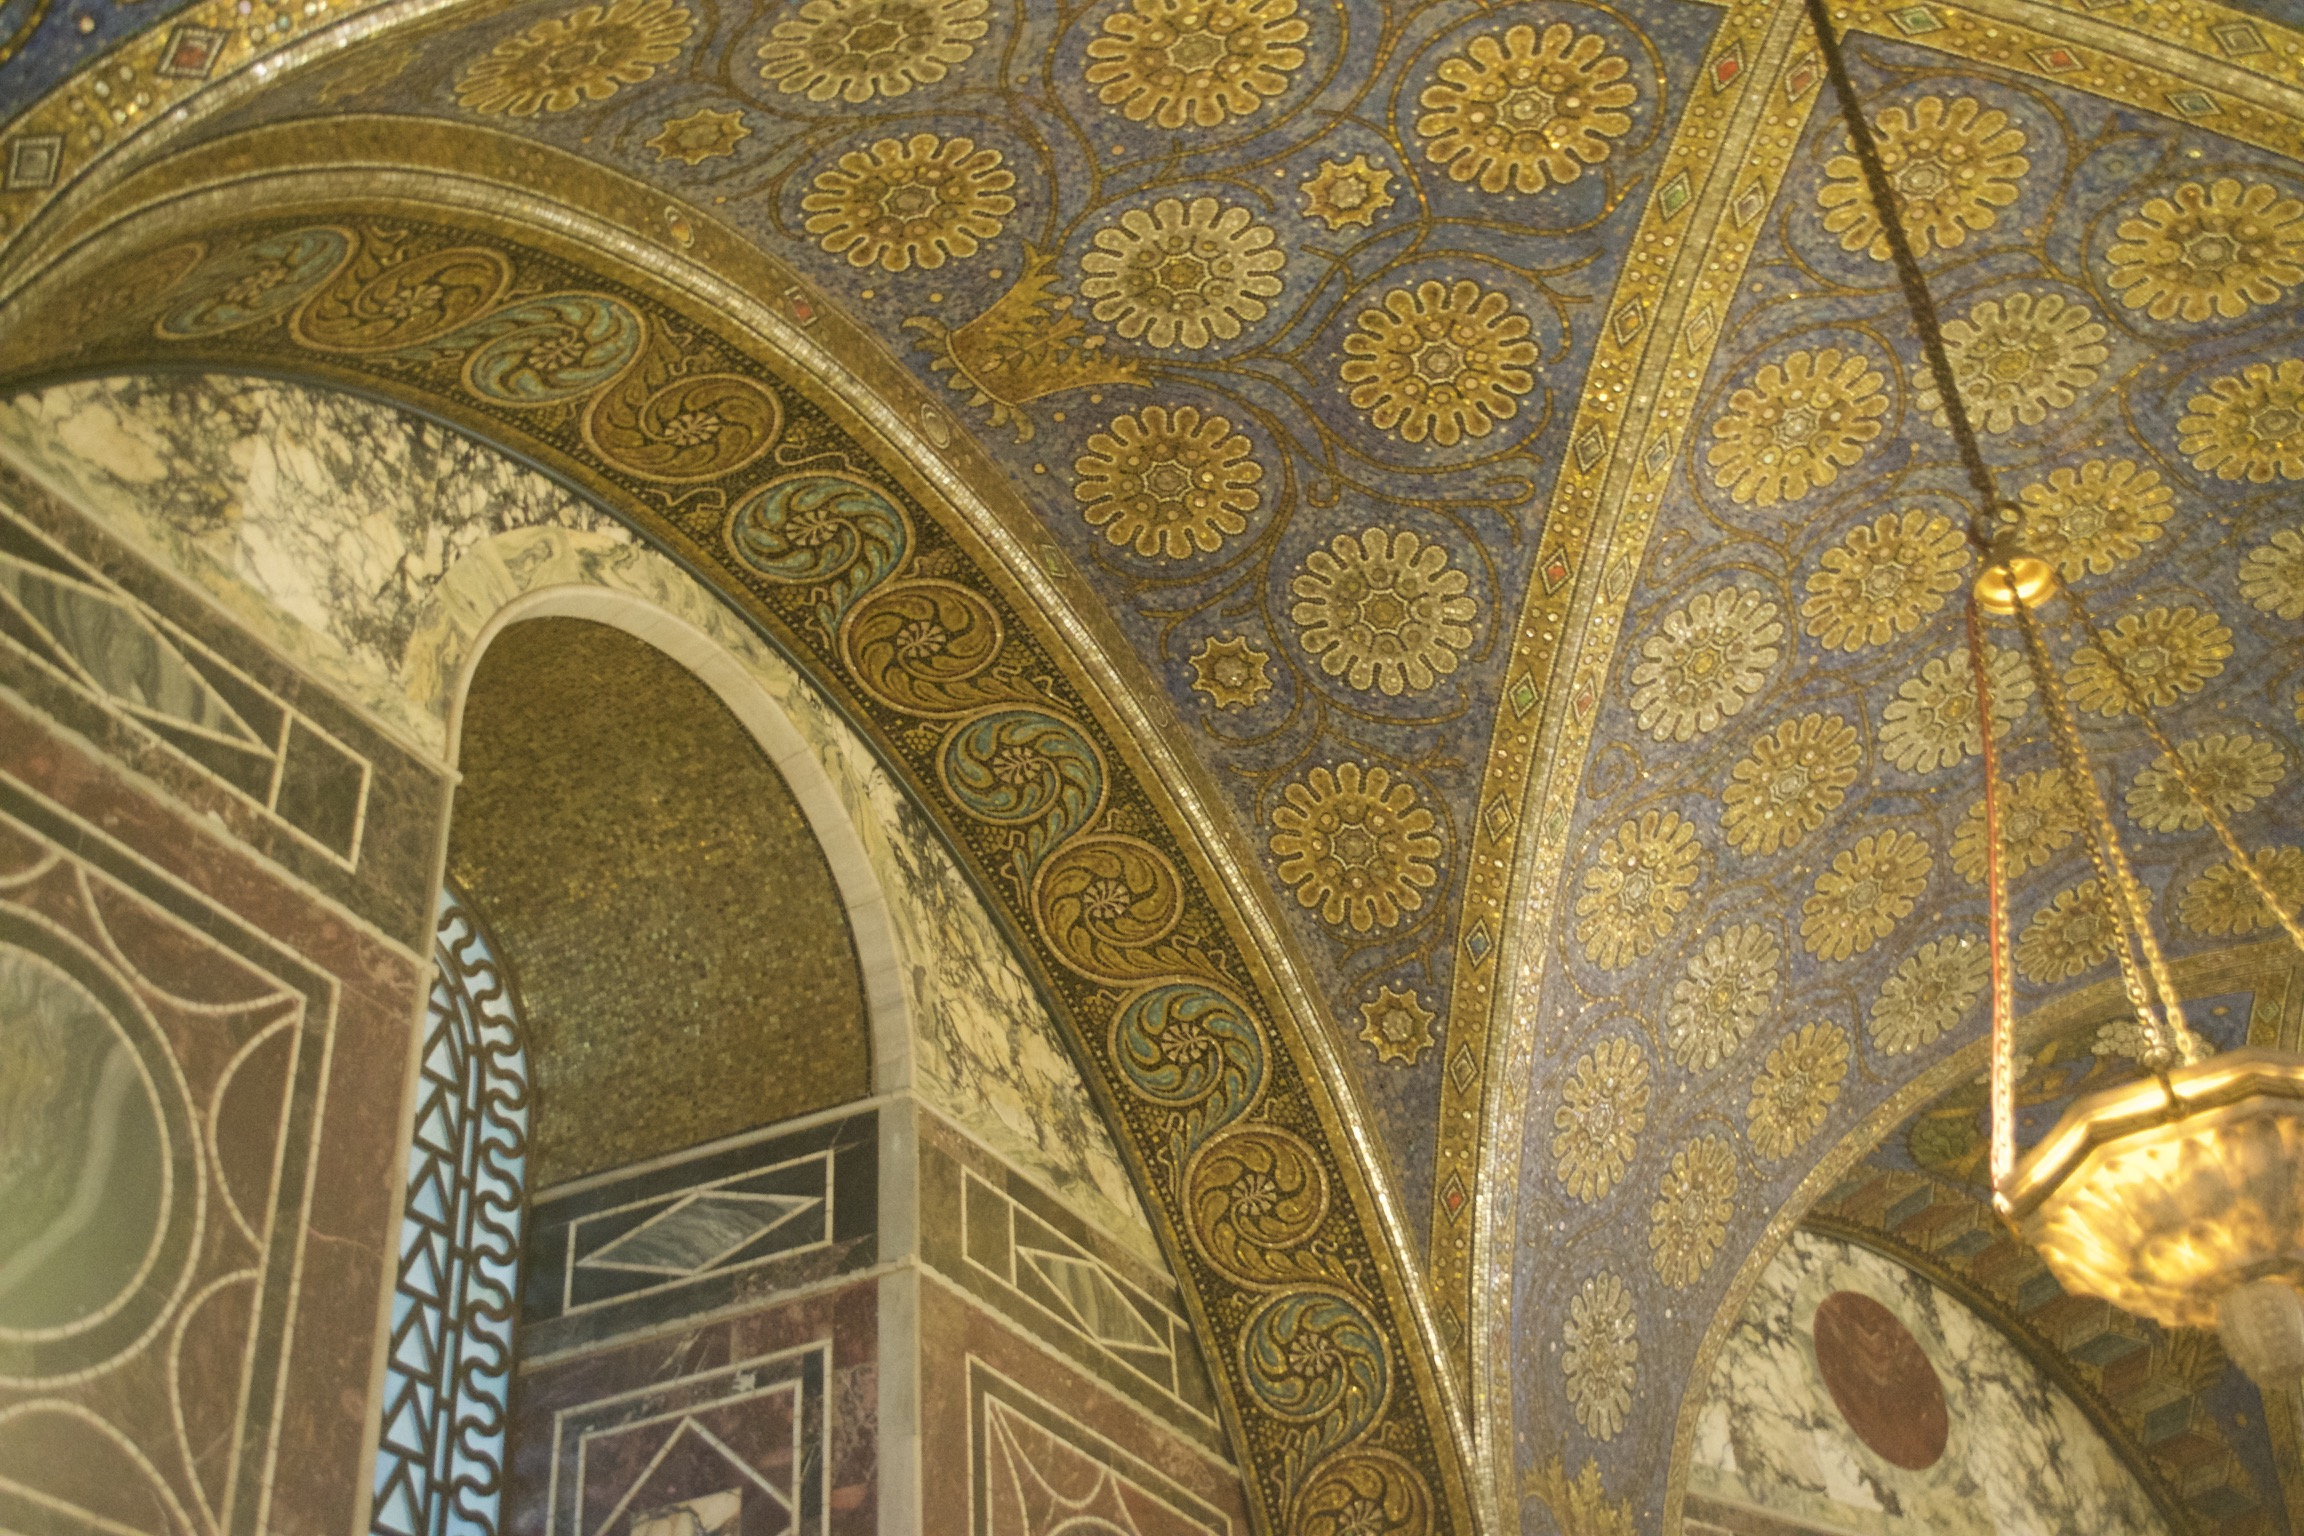 Marble and tile mosaics cover a ceiling and window arch in geometric and flowered designs.